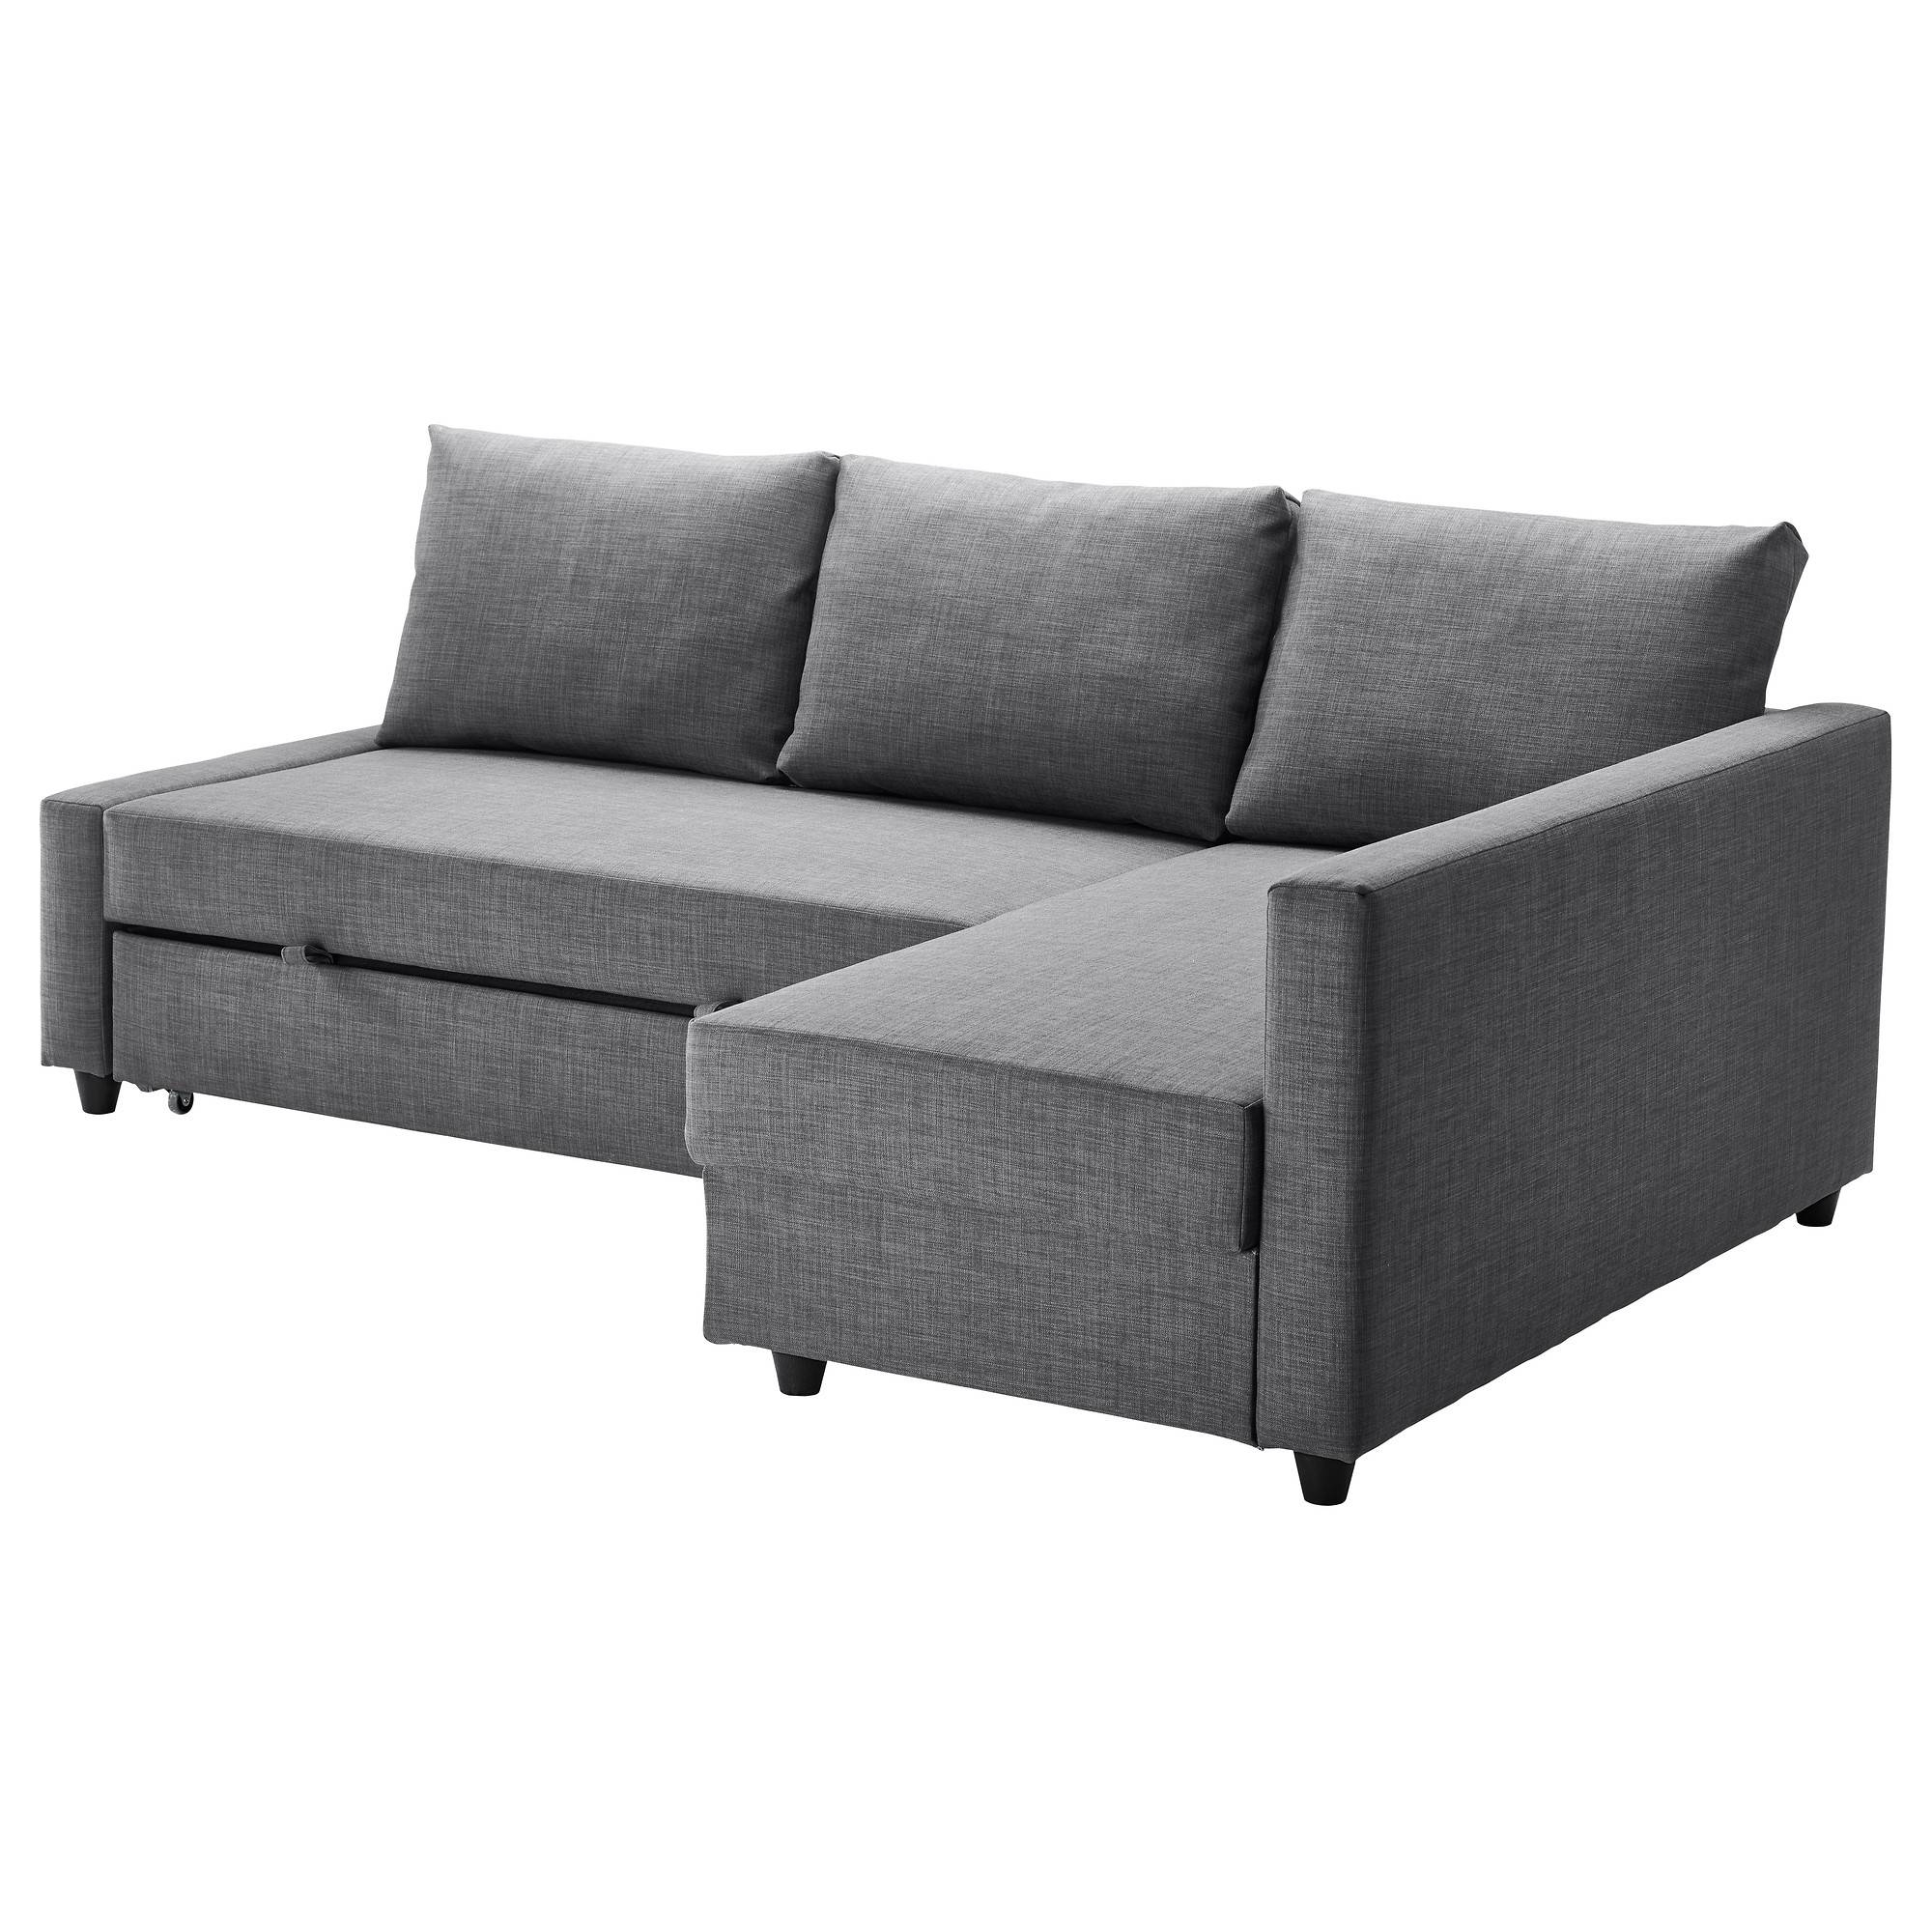 Friheten Sleeper Sectional,3 Seat W/storage - Skiftebo Dark Gray intended for L Shaped Sofa Bed (Image 6 of 30)